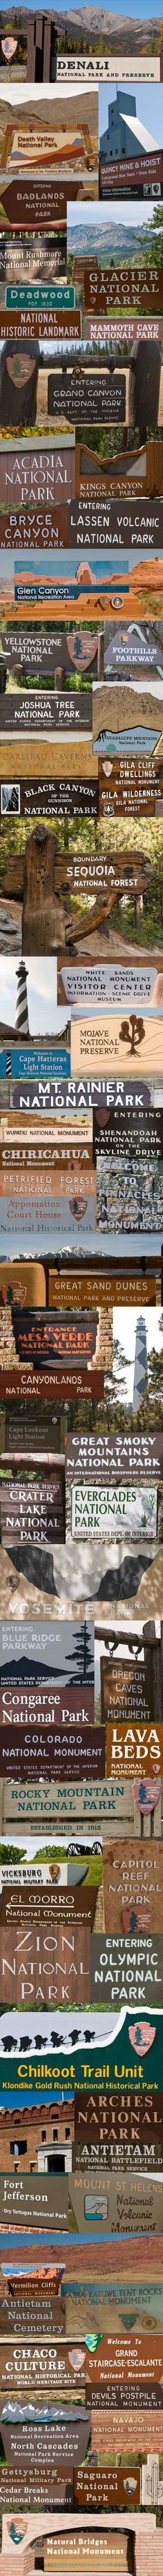 National Park Signs!